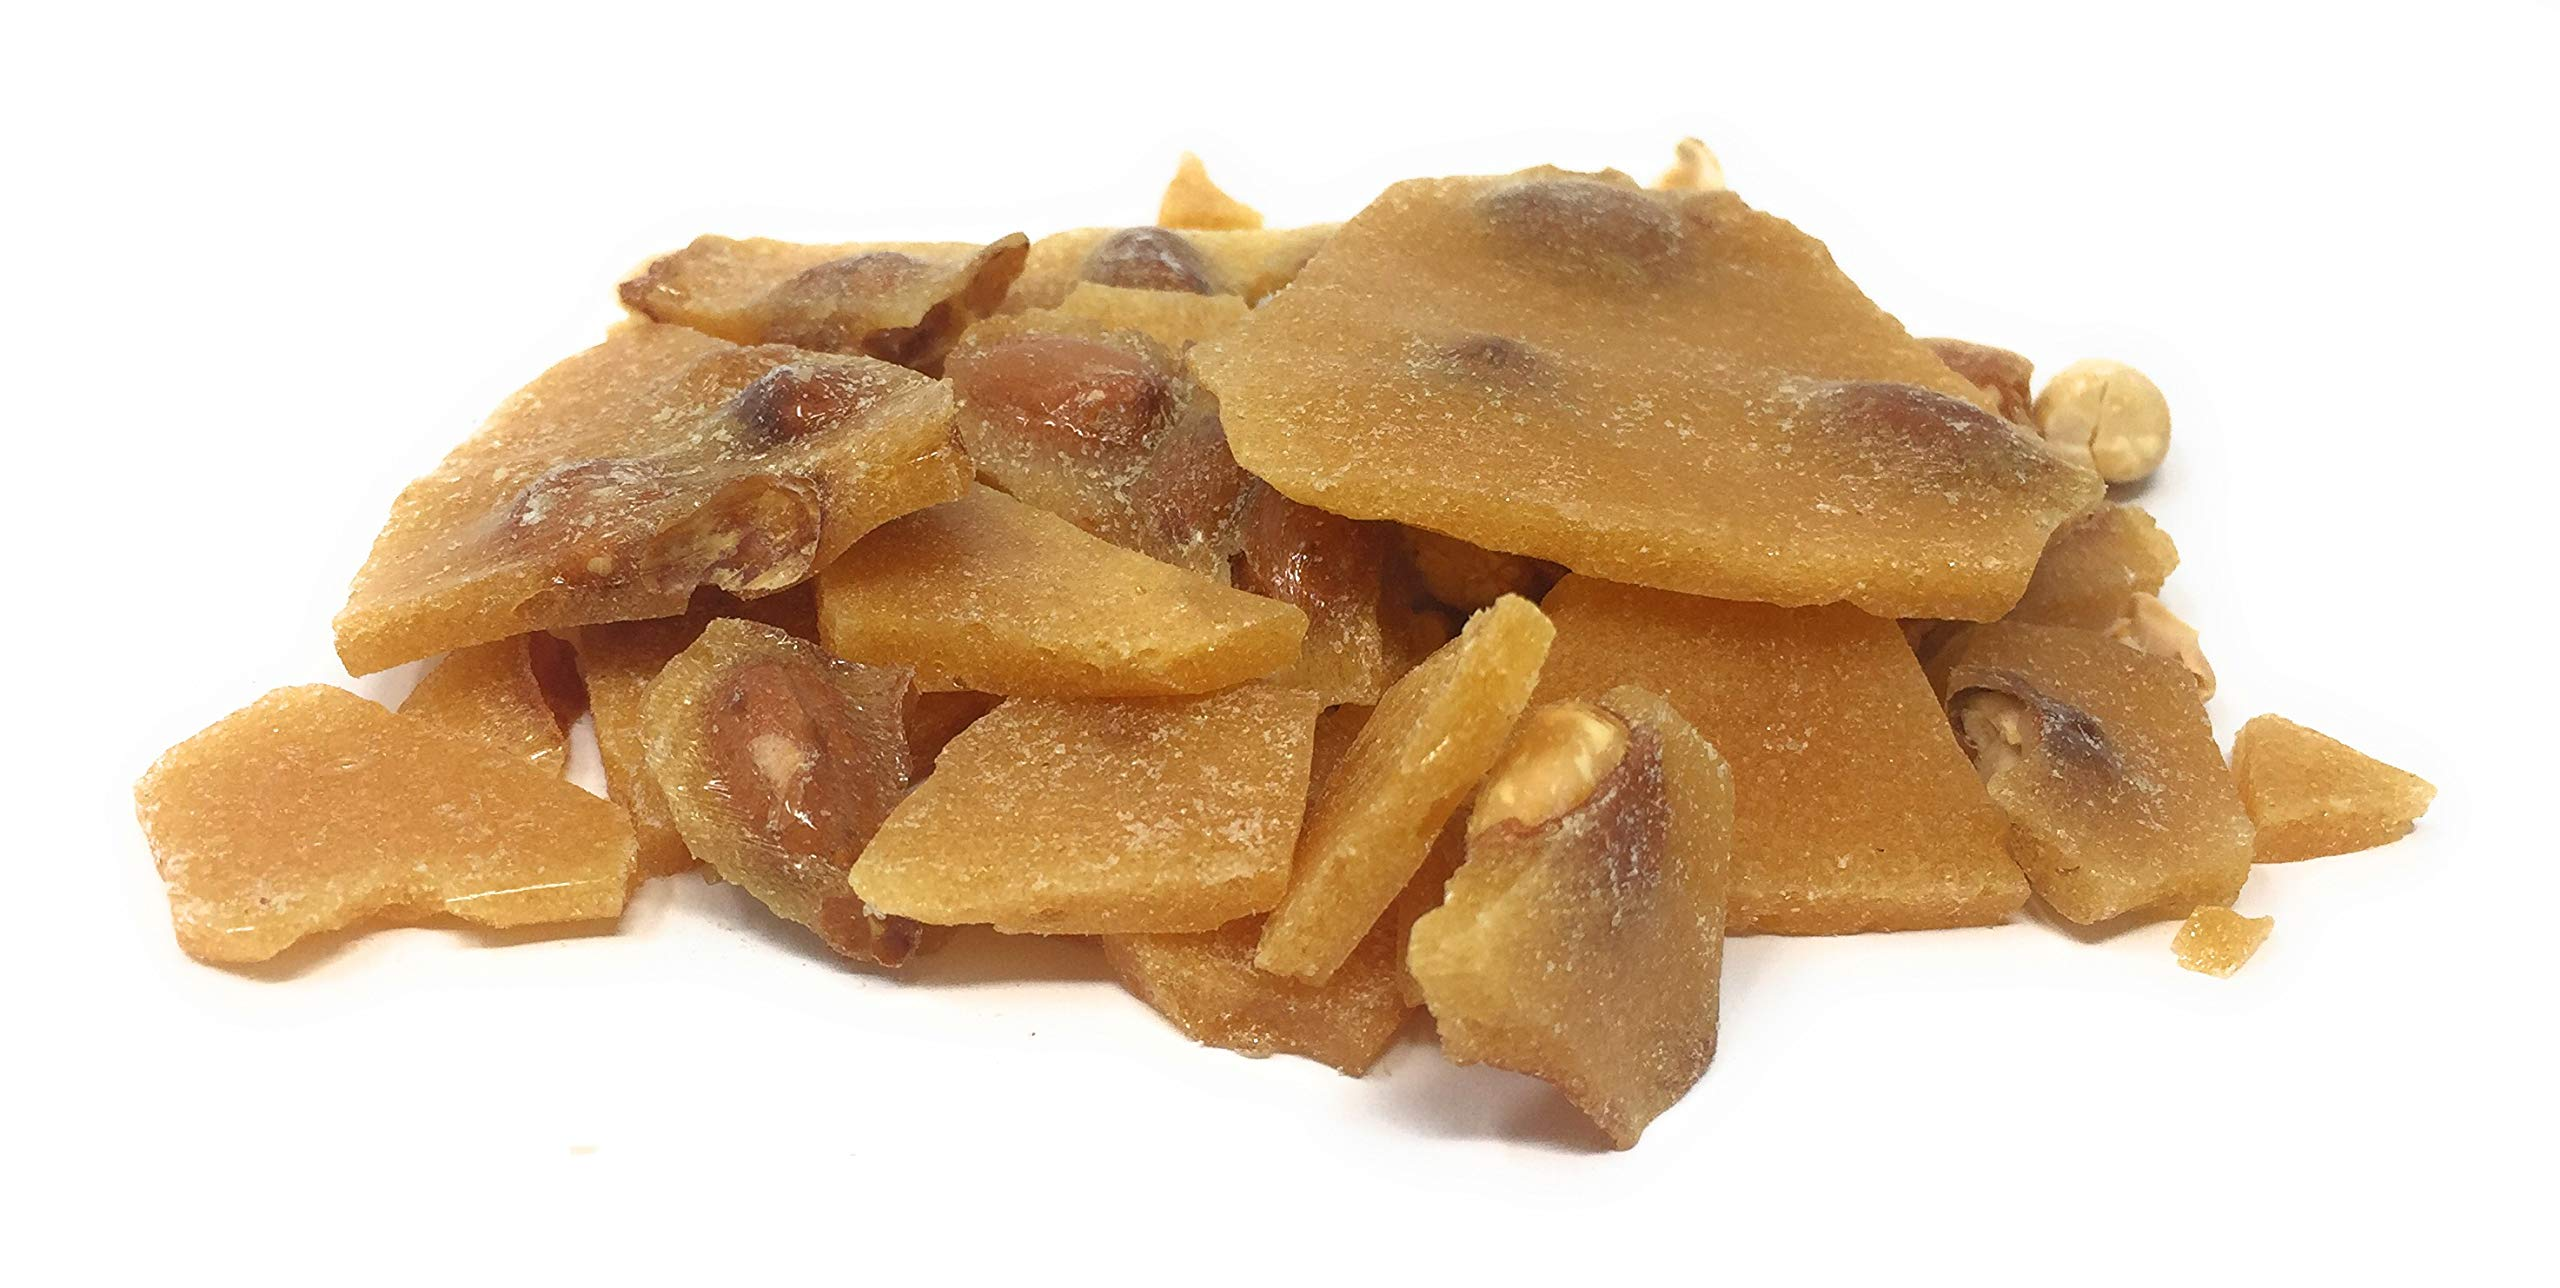 Yankee Traders Brand Home Style Peanut Brittle Candy, 2 Pound by YANKEETRADERS (Image #1)